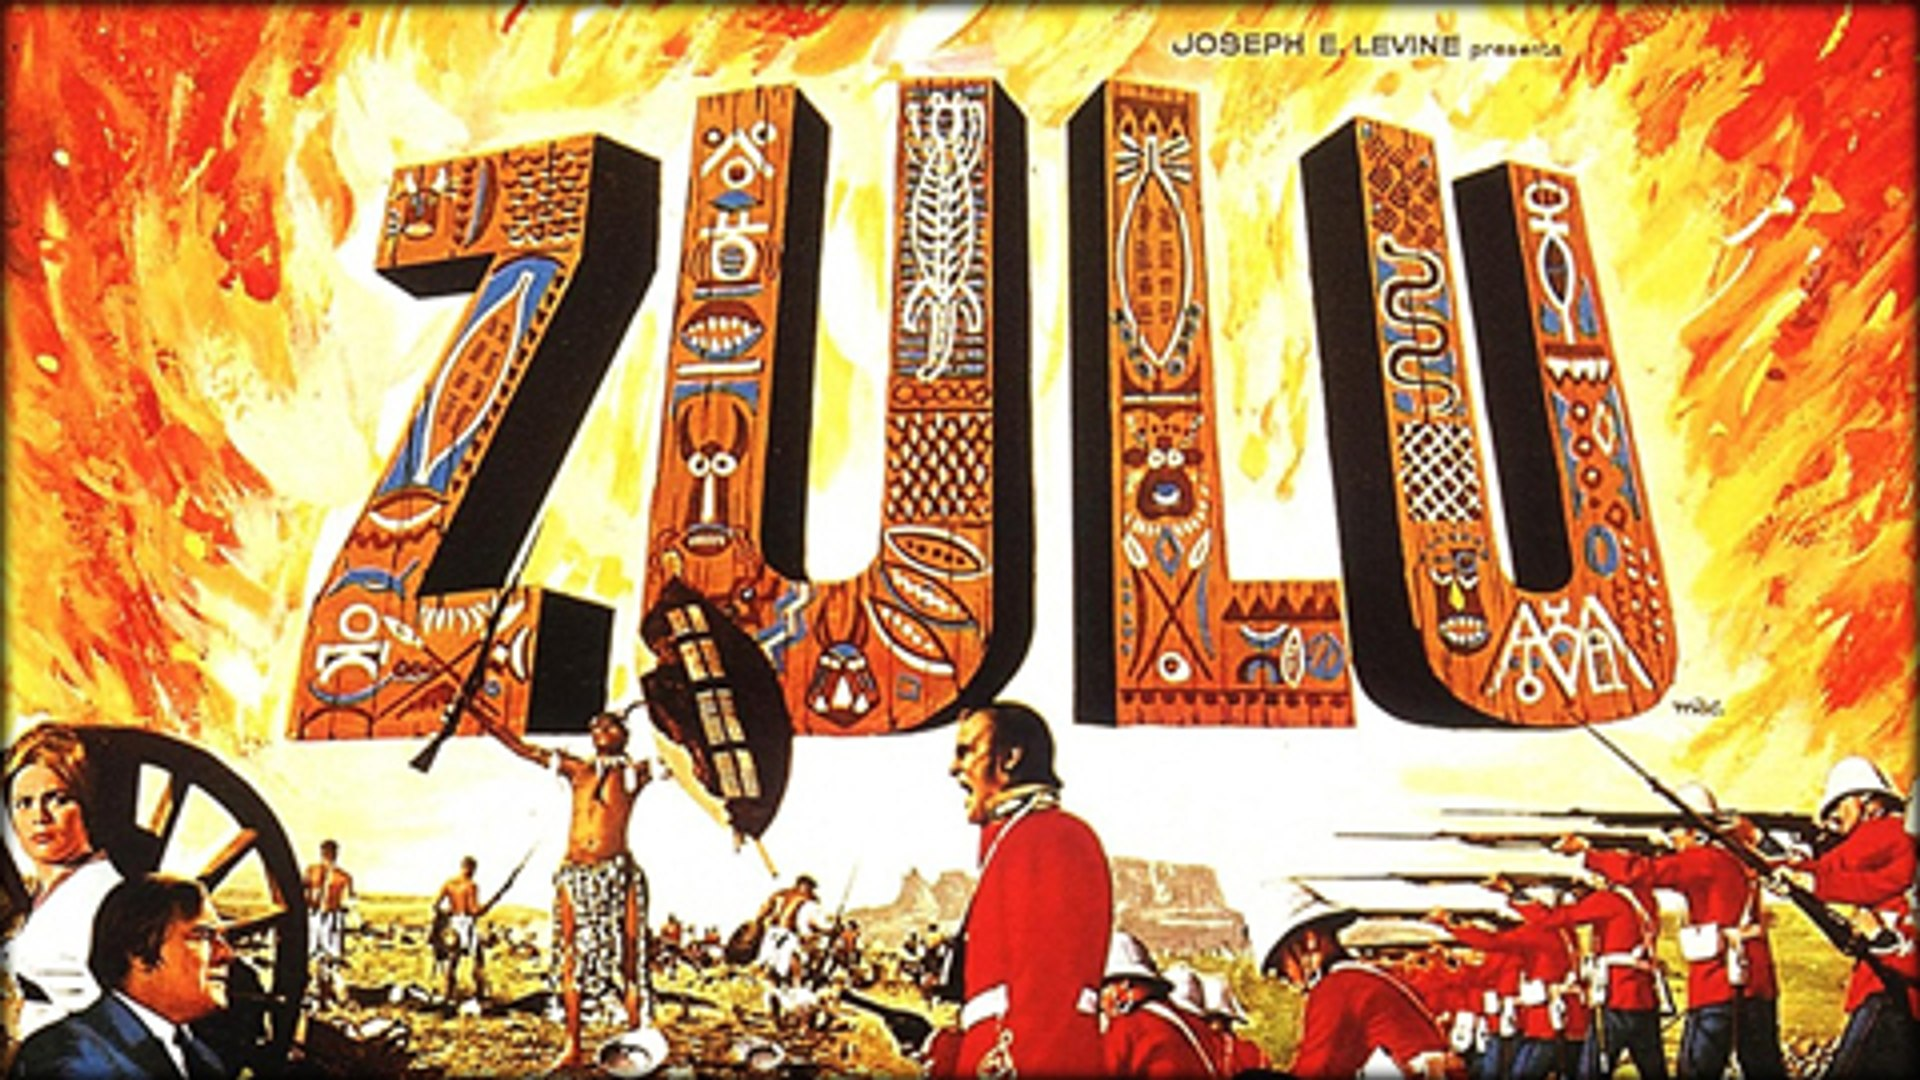 Zulu (1964) - (Drama, History, War) [Stanley Baker, Jack Hawkins, Ulla  Jacobsson] [Feature] - video Dailymotion